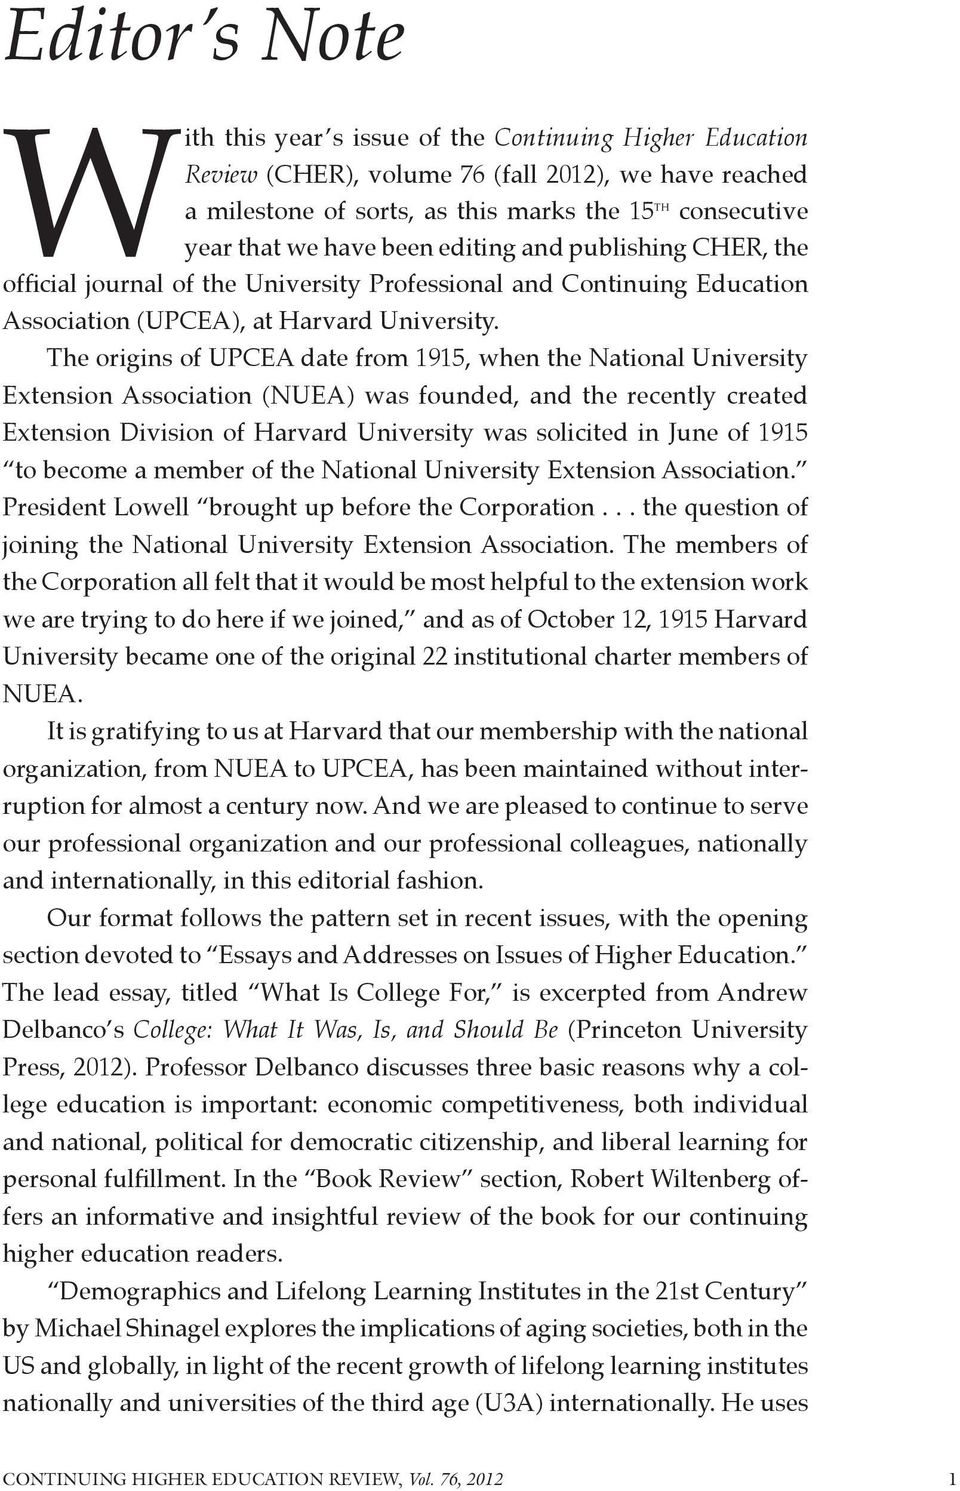 The origins of UPCEA date from 1915, when the National University Extension Association (NUEA) was founded, and the recently created Extension Division of Harvard University was solicited in June of